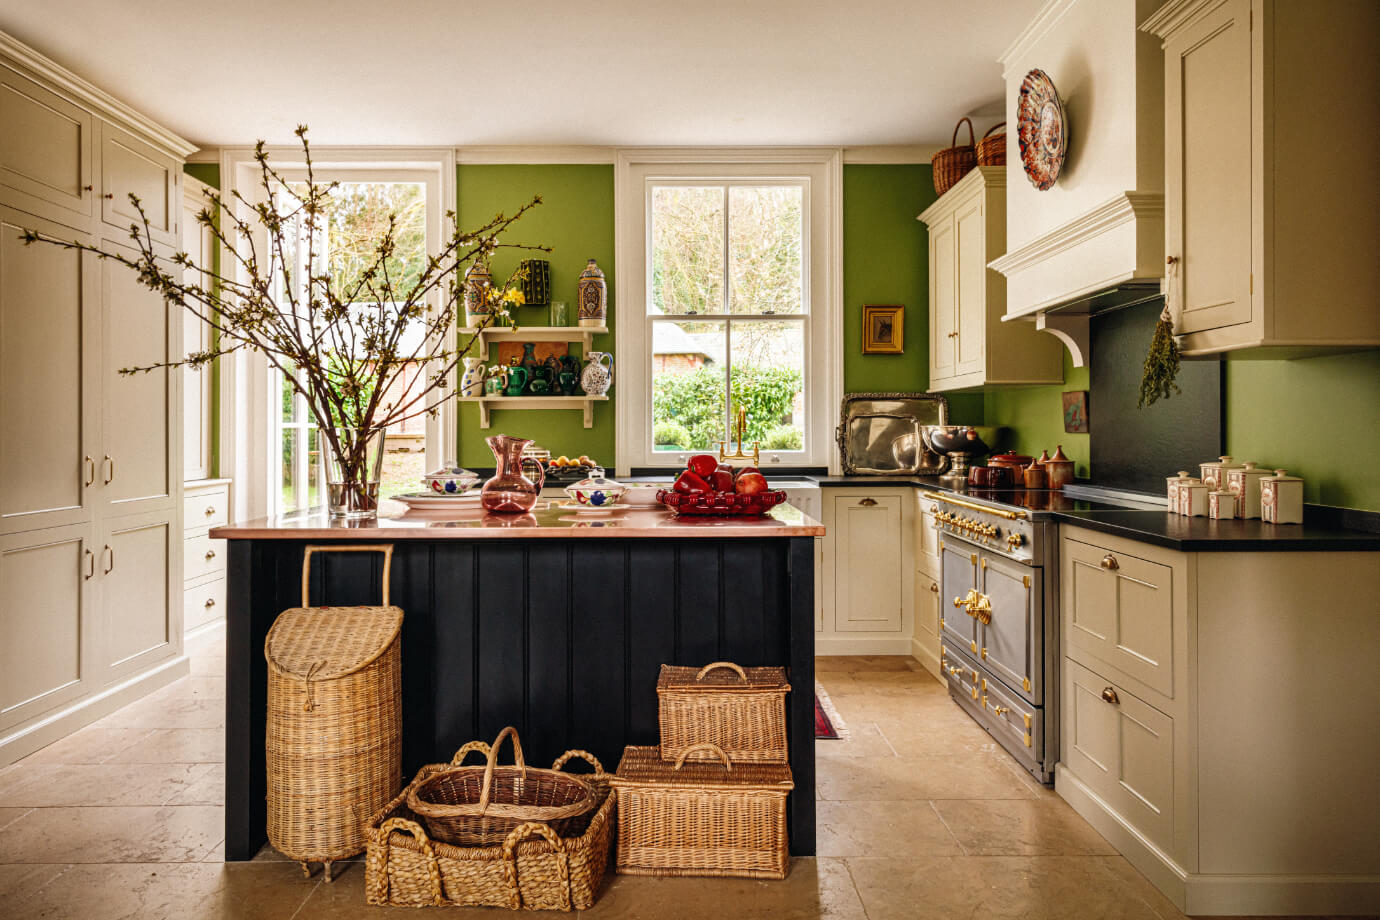 french-country-kitchen-green-walls-nordroom